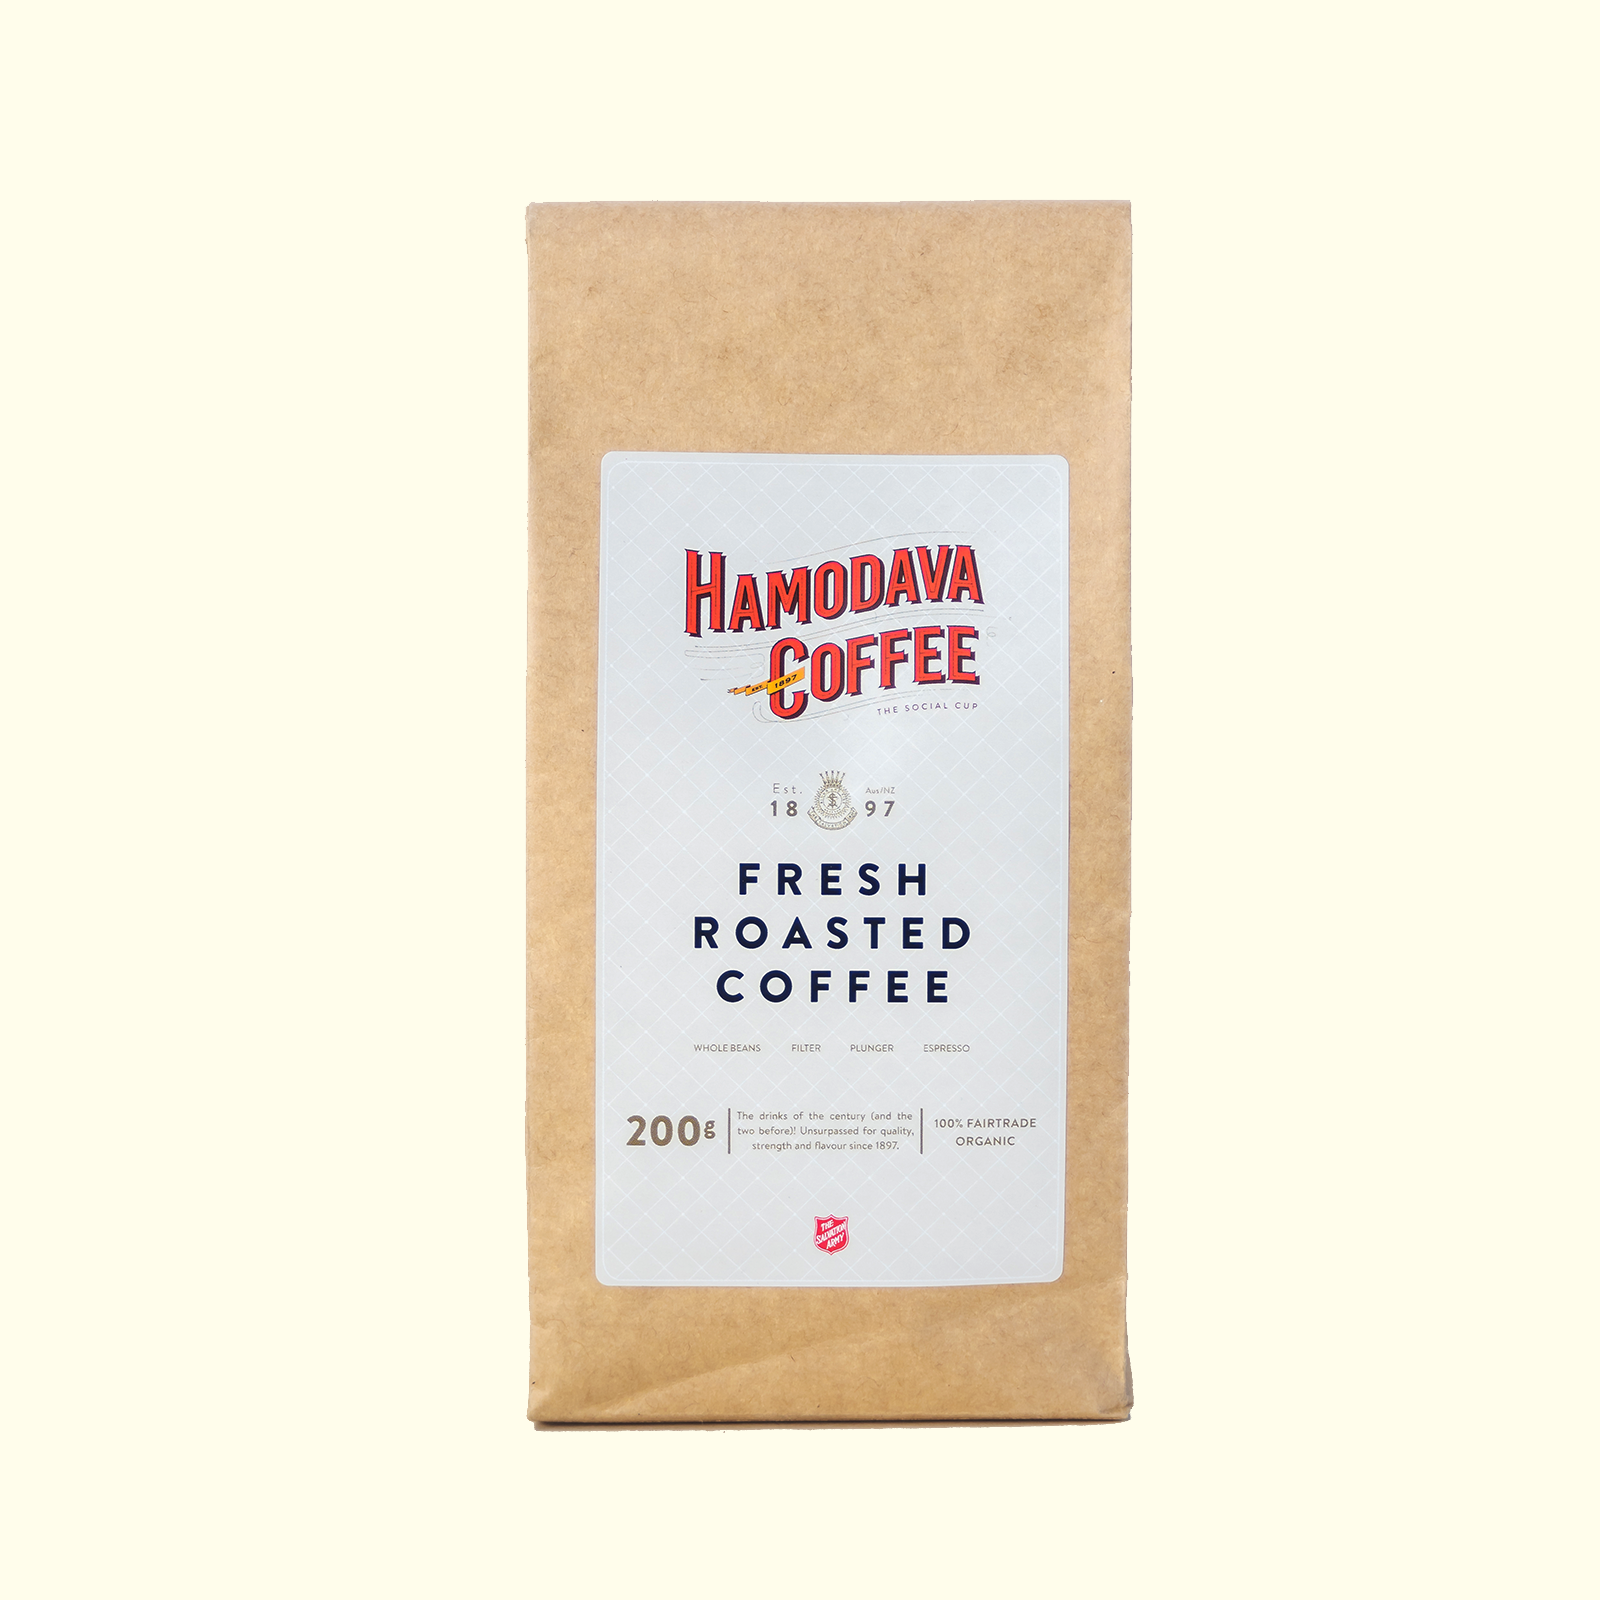 Hamodava Fresh Roasted Coffee